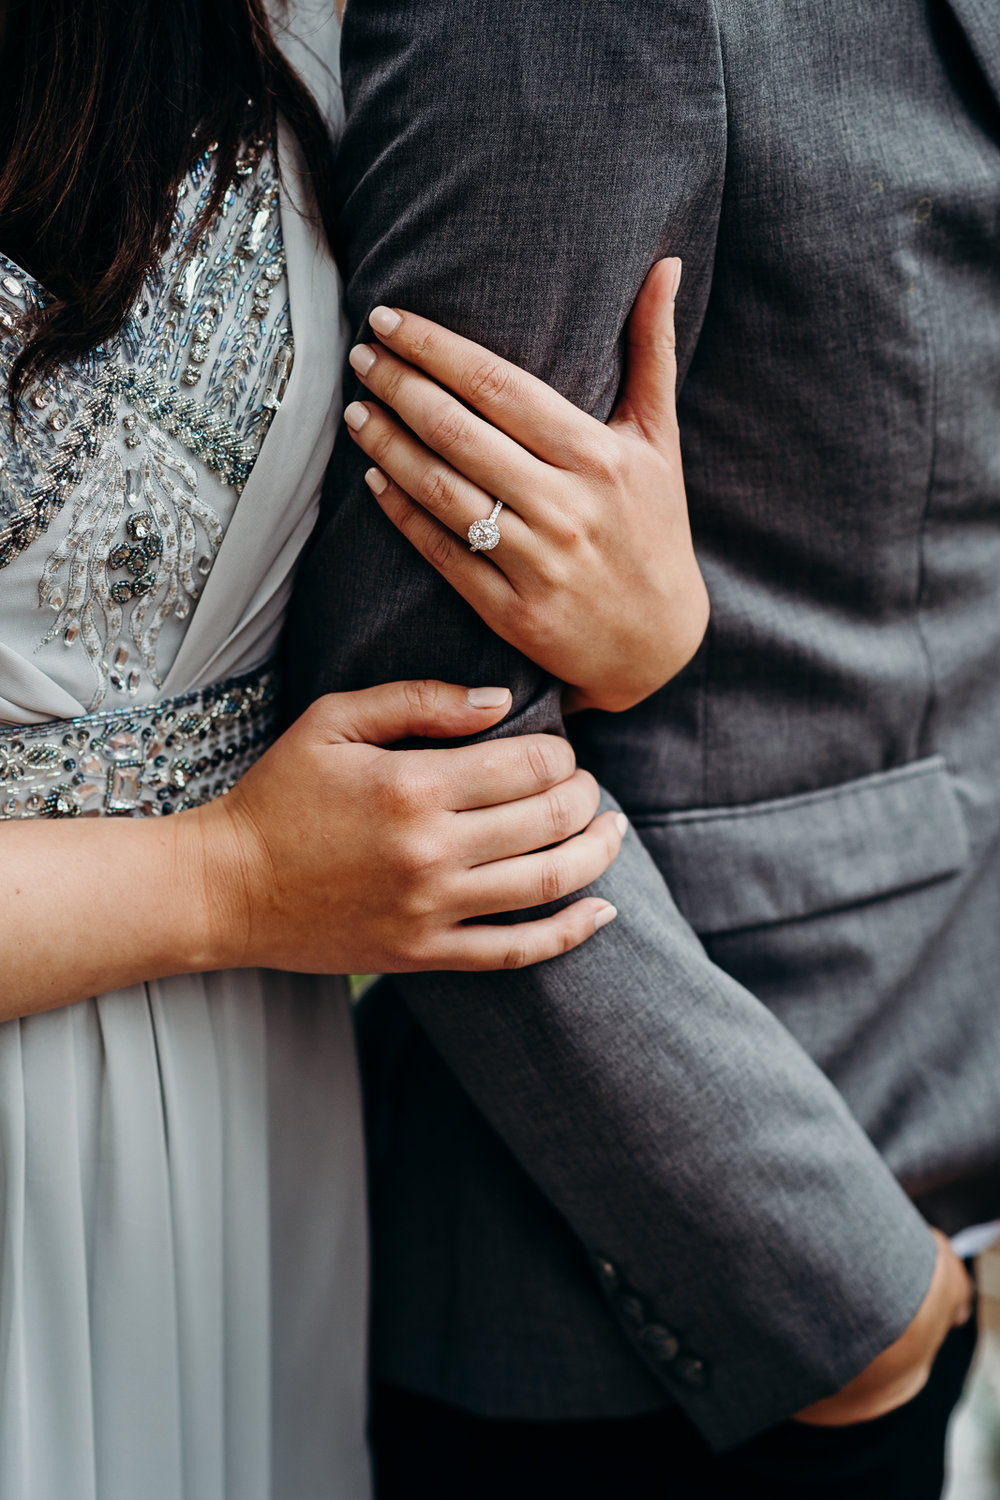 Woman shows her round cut engagement ring while holding her fiancé's arm.